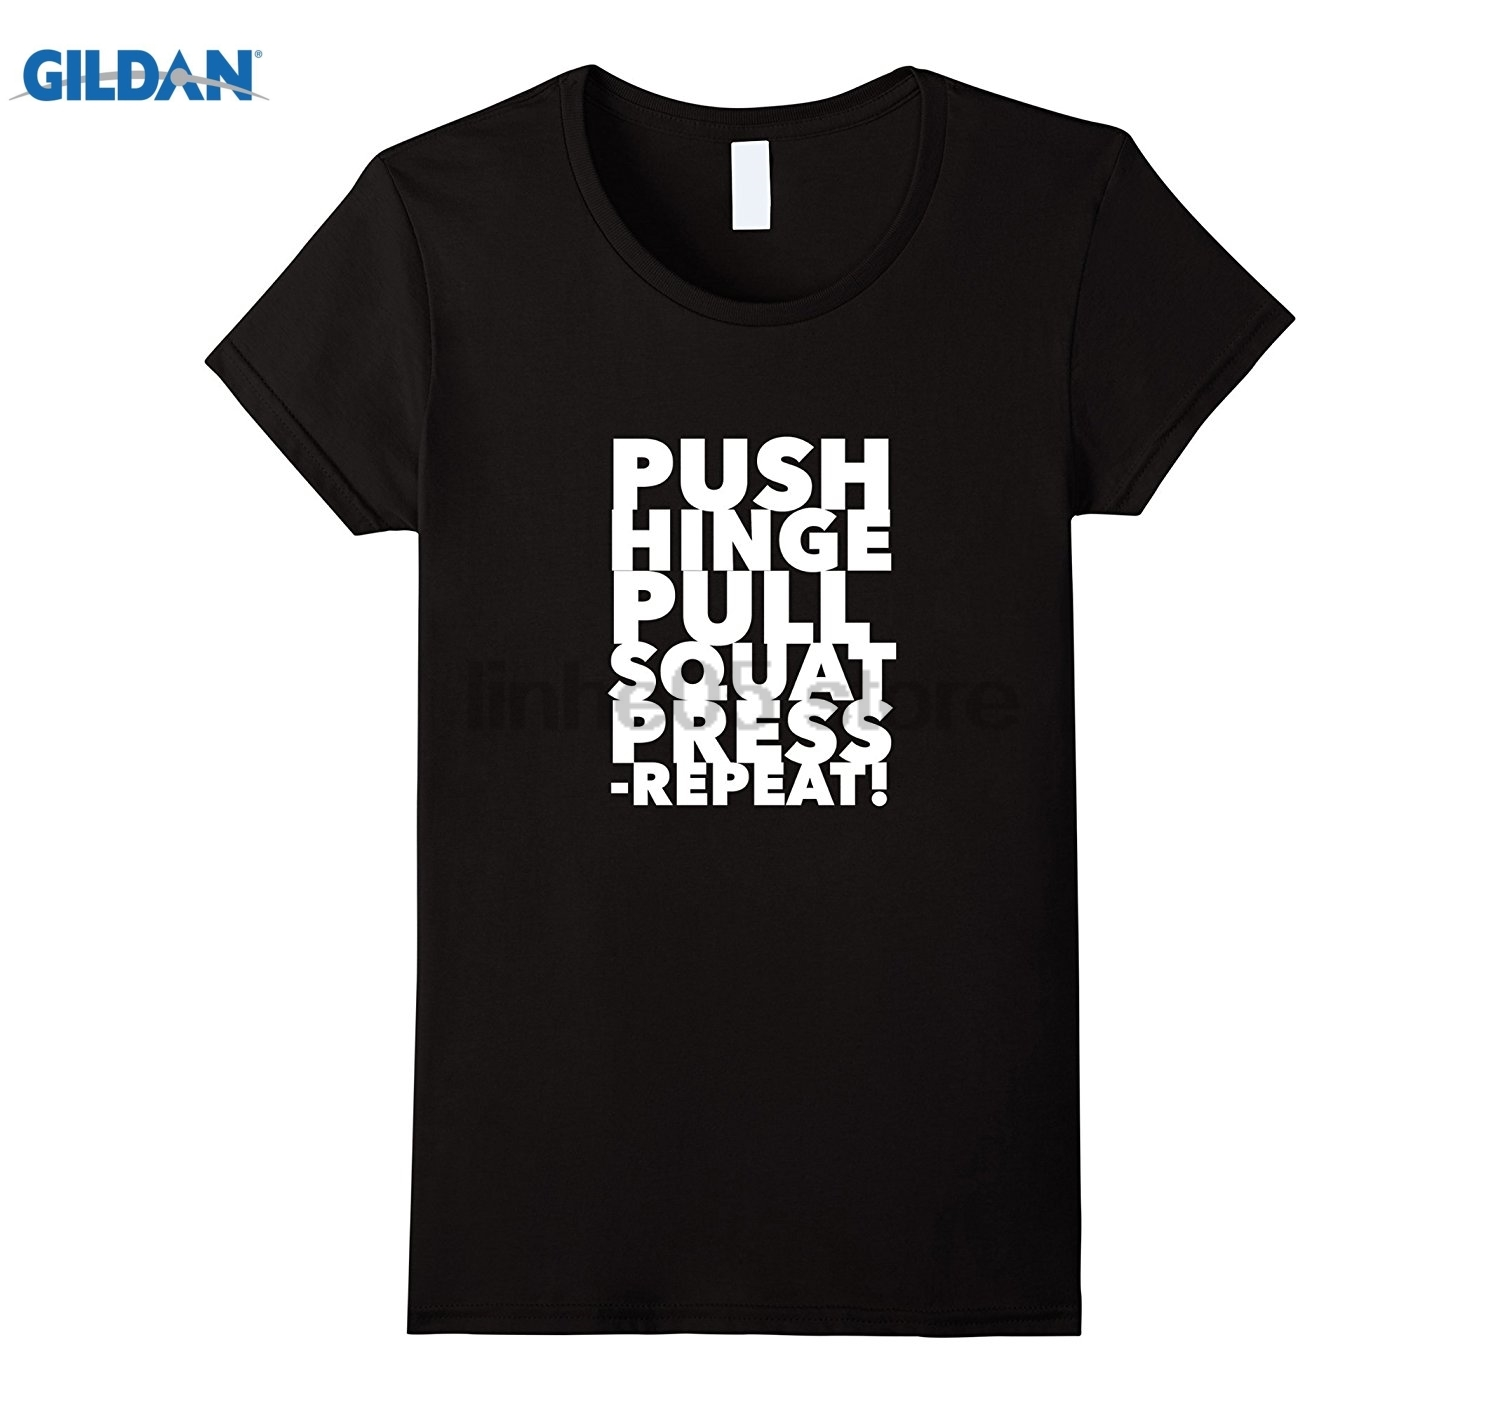 GILDAN Workout Push hinge pull squat press repeat t-shirt Dress female T-shirt